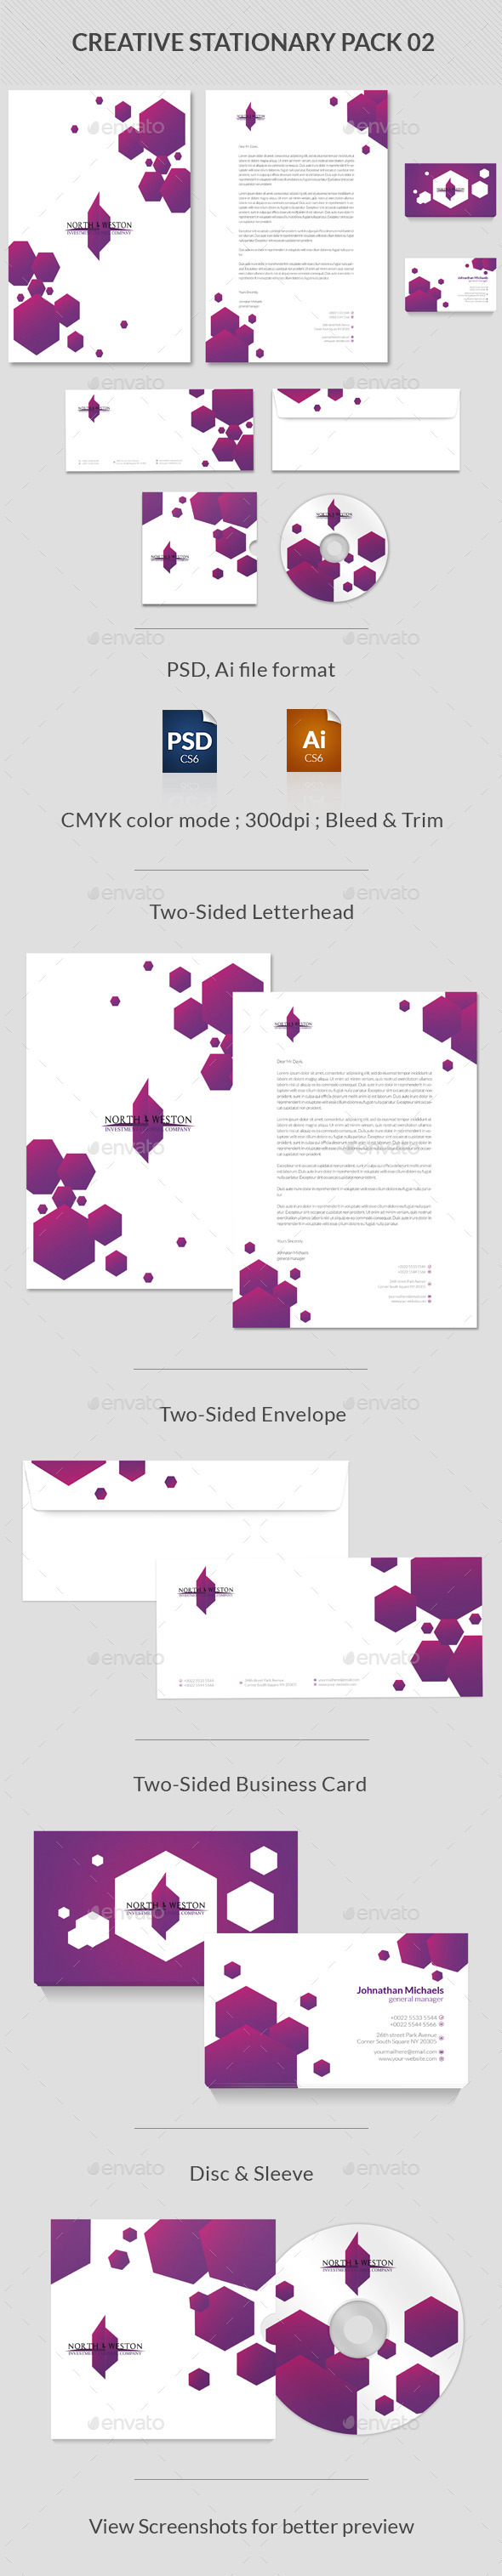 Creative Stationary Pack - Stationery Print Templates